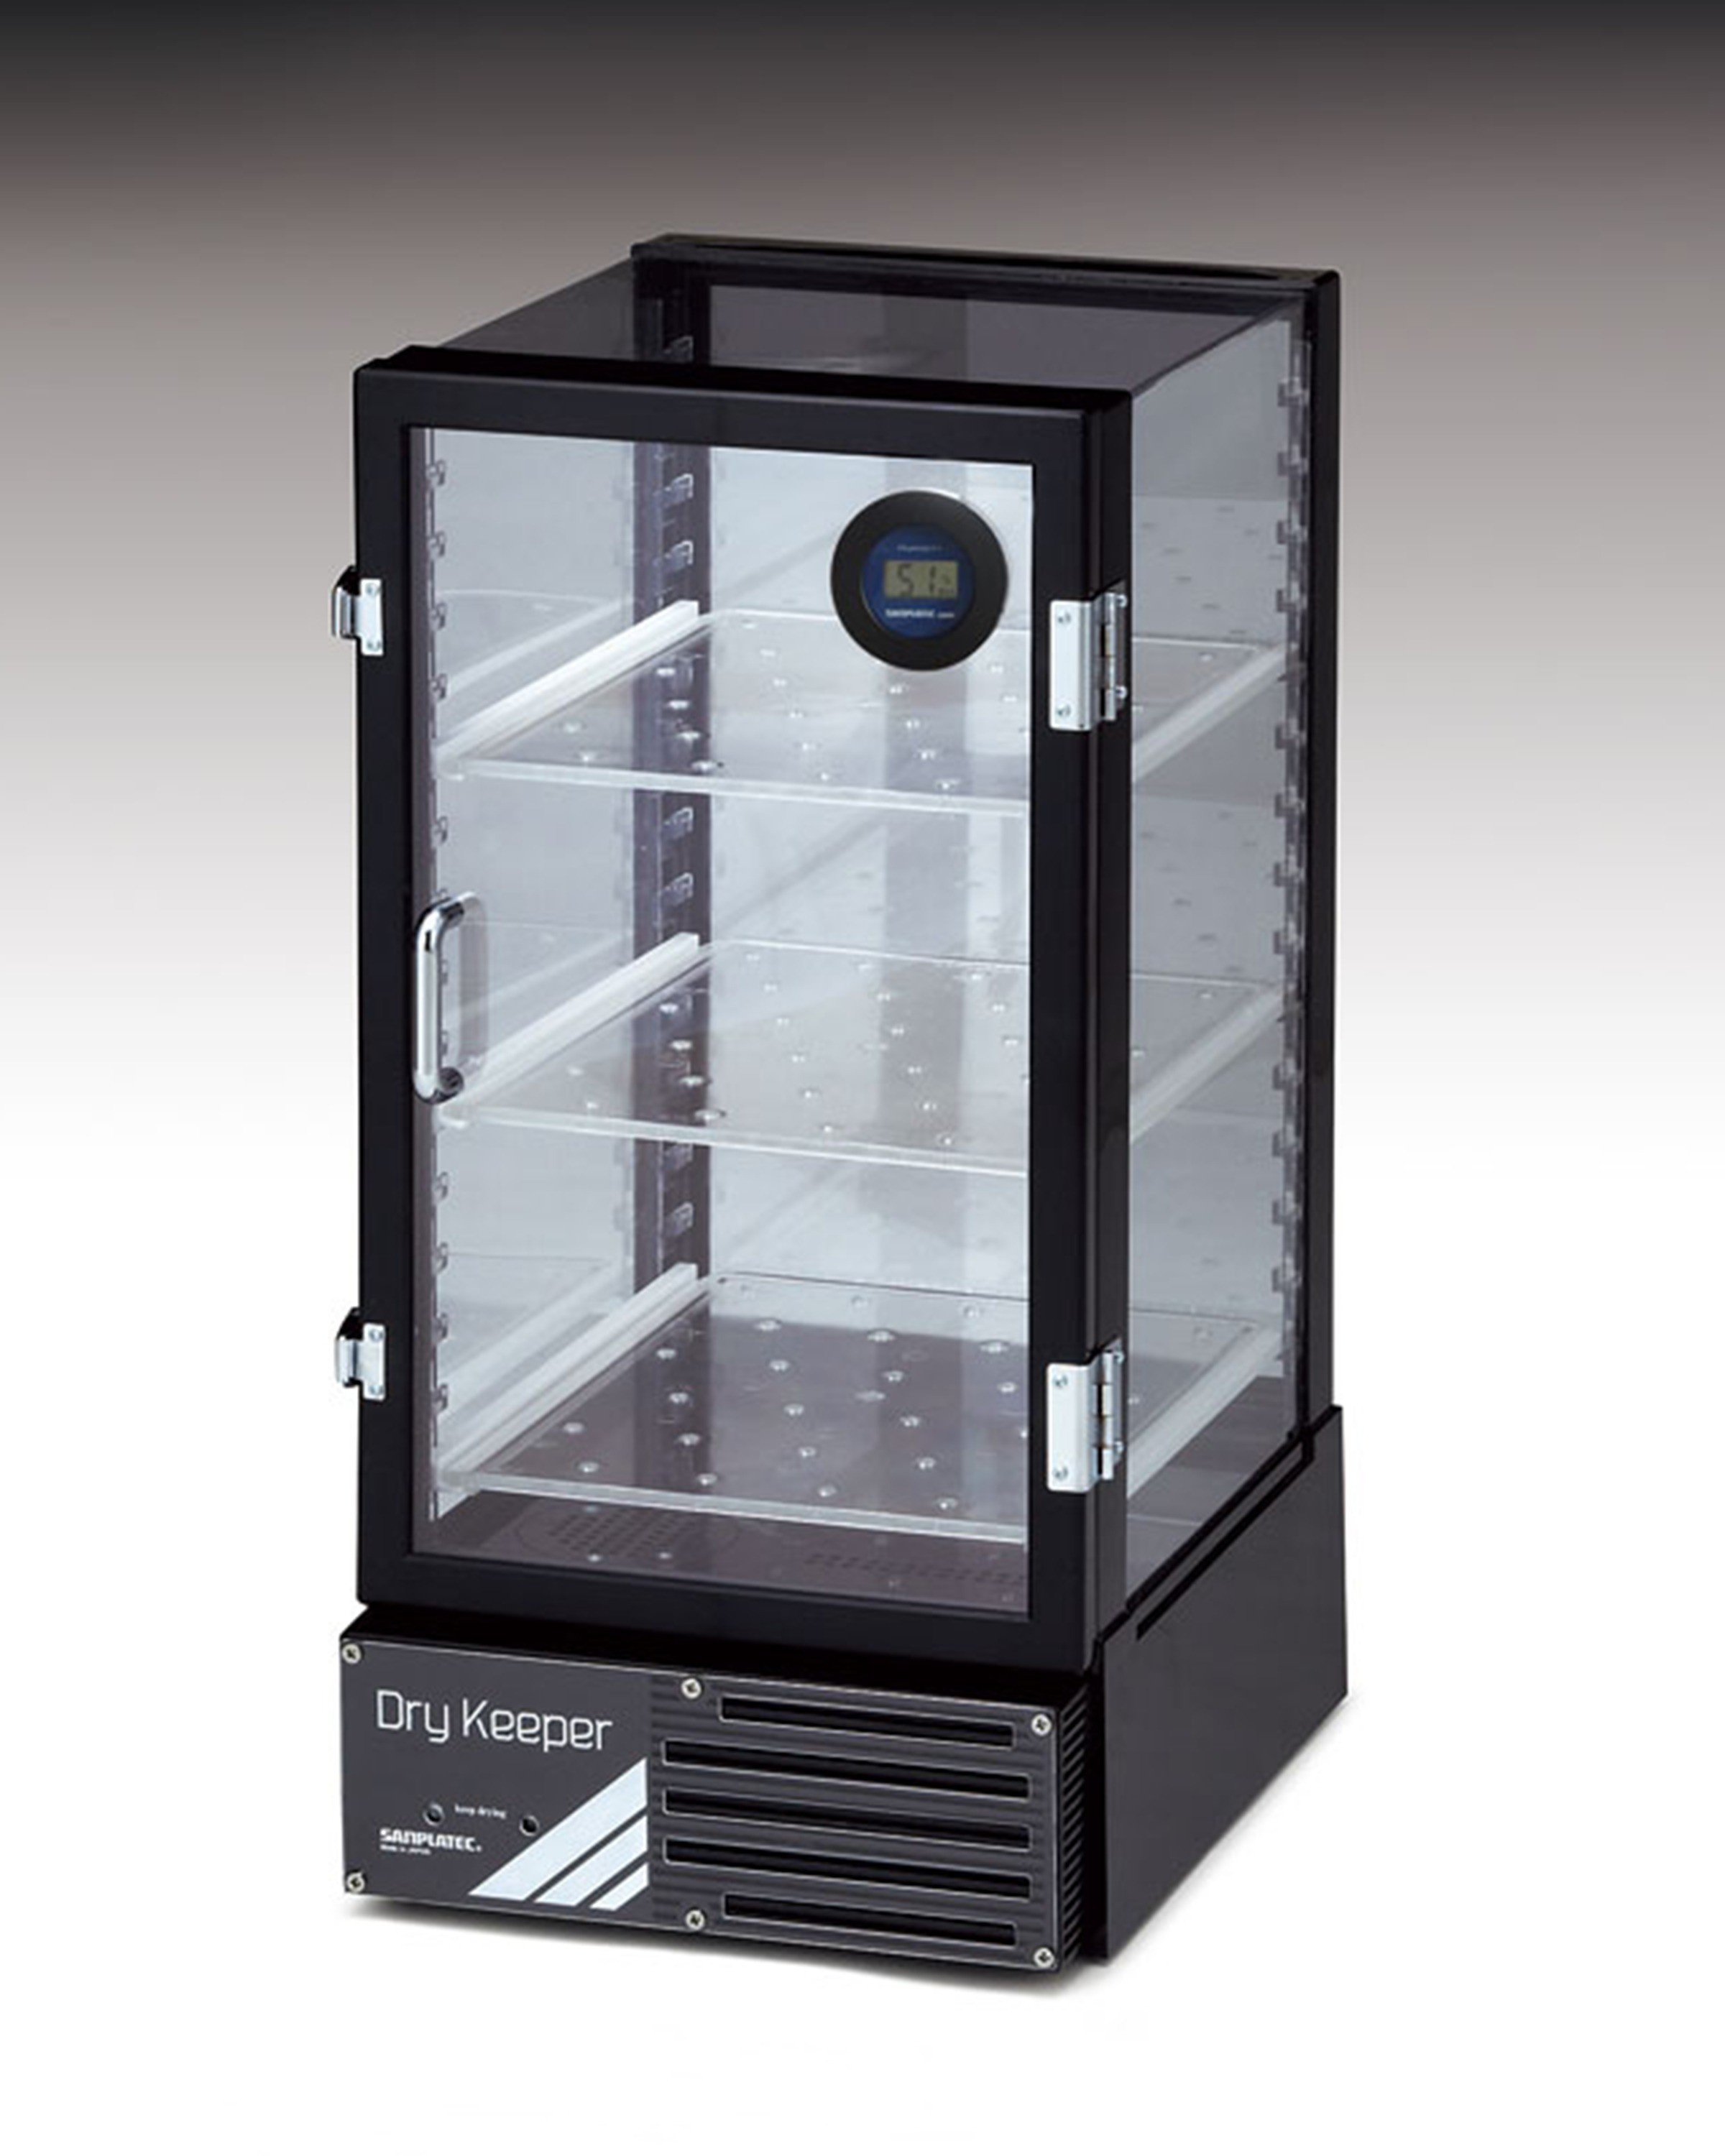 Dry-Keeper Vertical Auto-Desiccator Cabinet